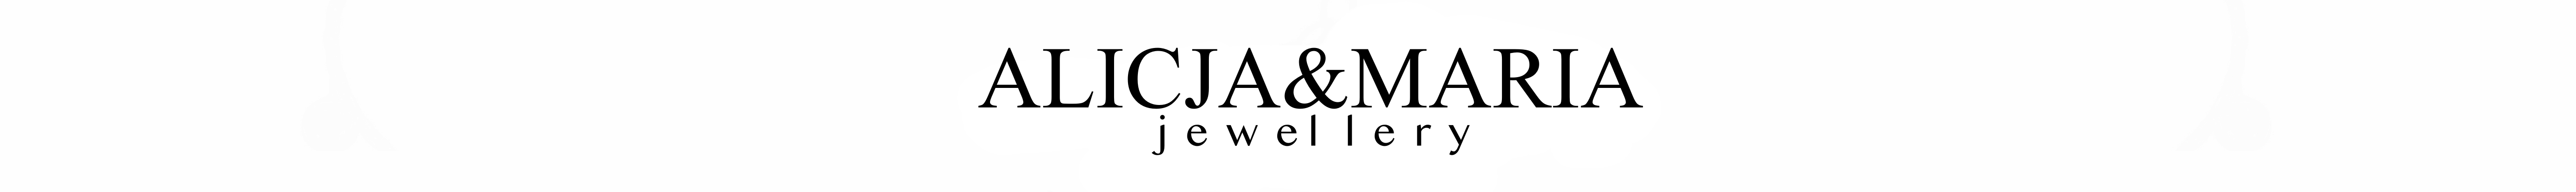 Alicja&Maria Jewellery